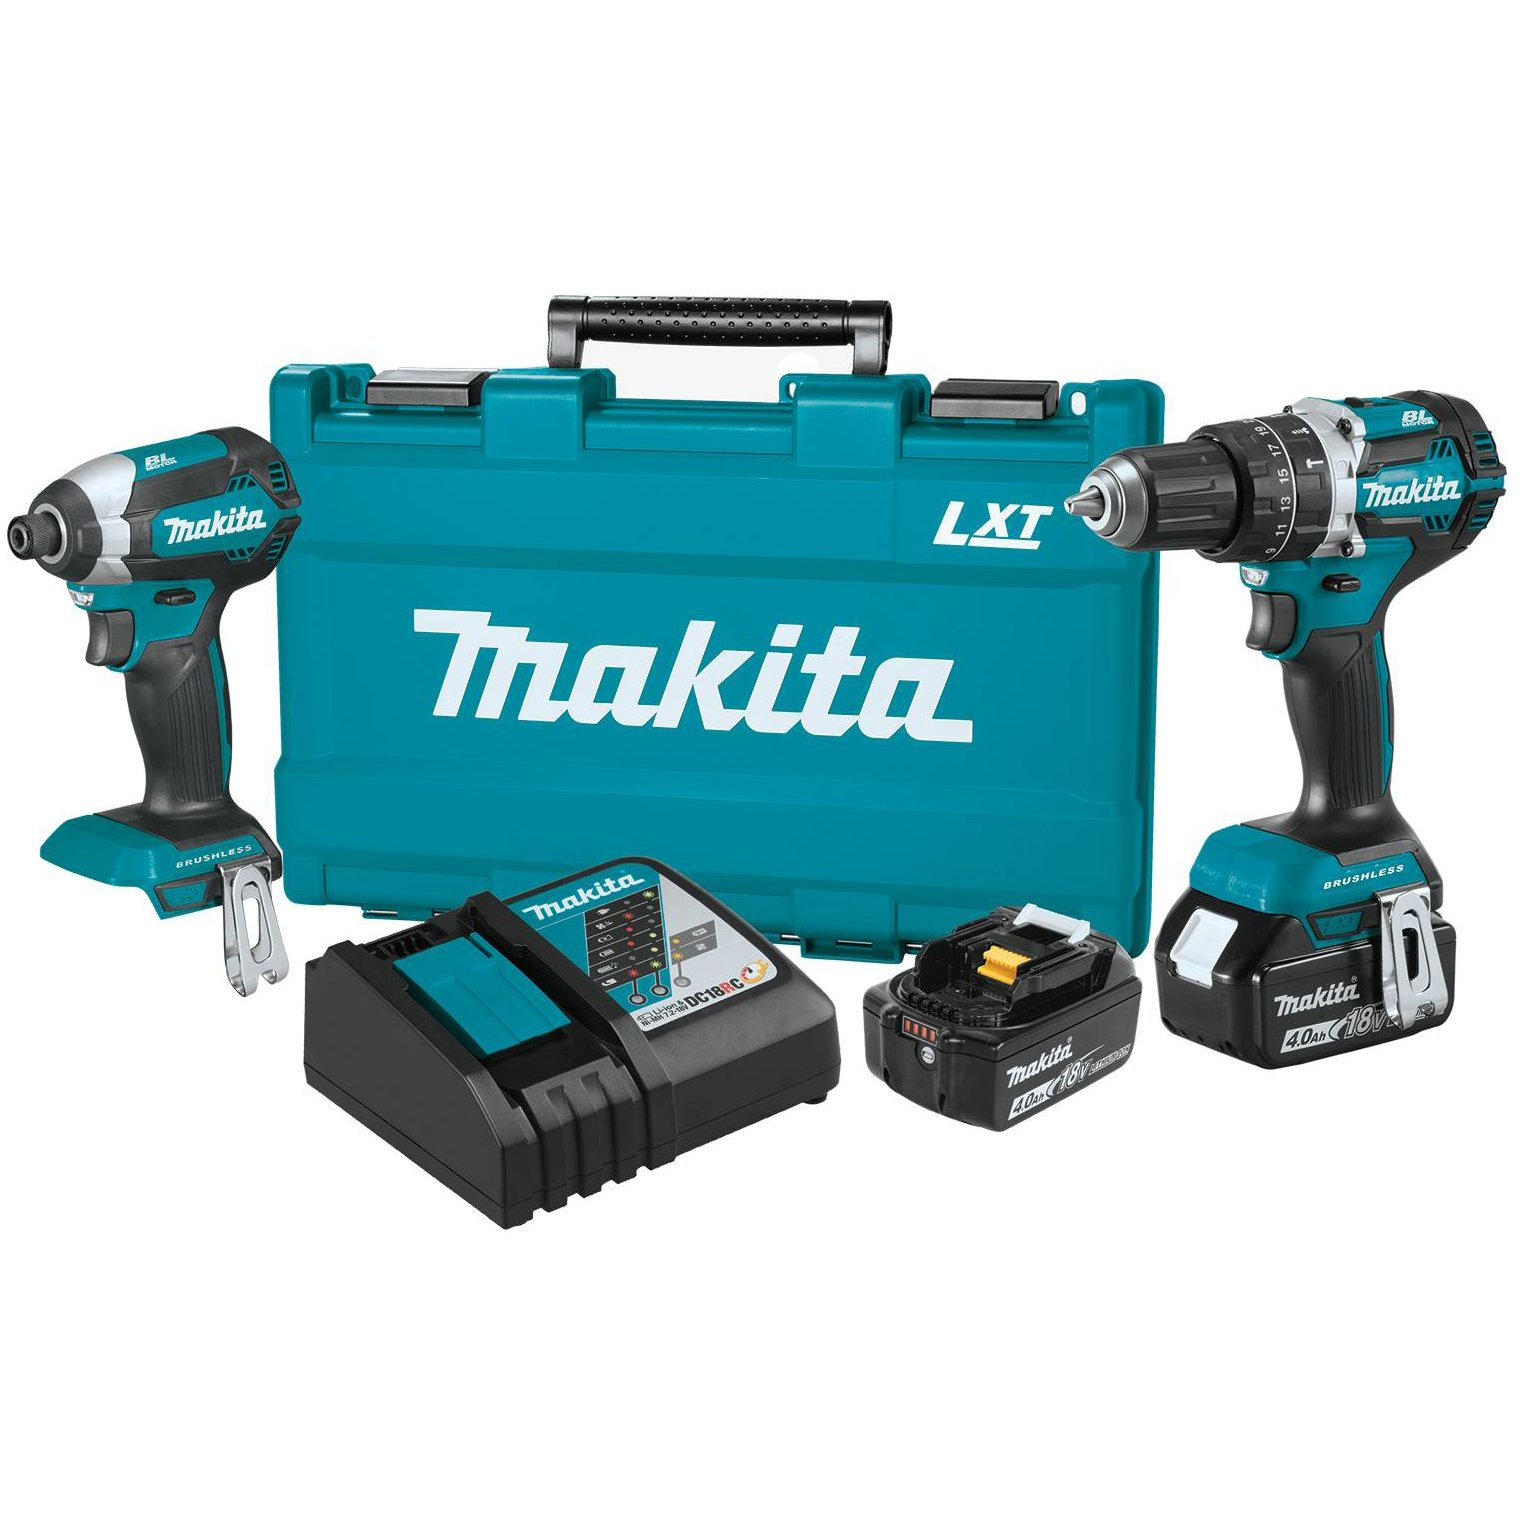 makita brushless 18v lxt cordless 2 piece impact driver. Black Bedroom Furniture Sets. Home Design Ideas